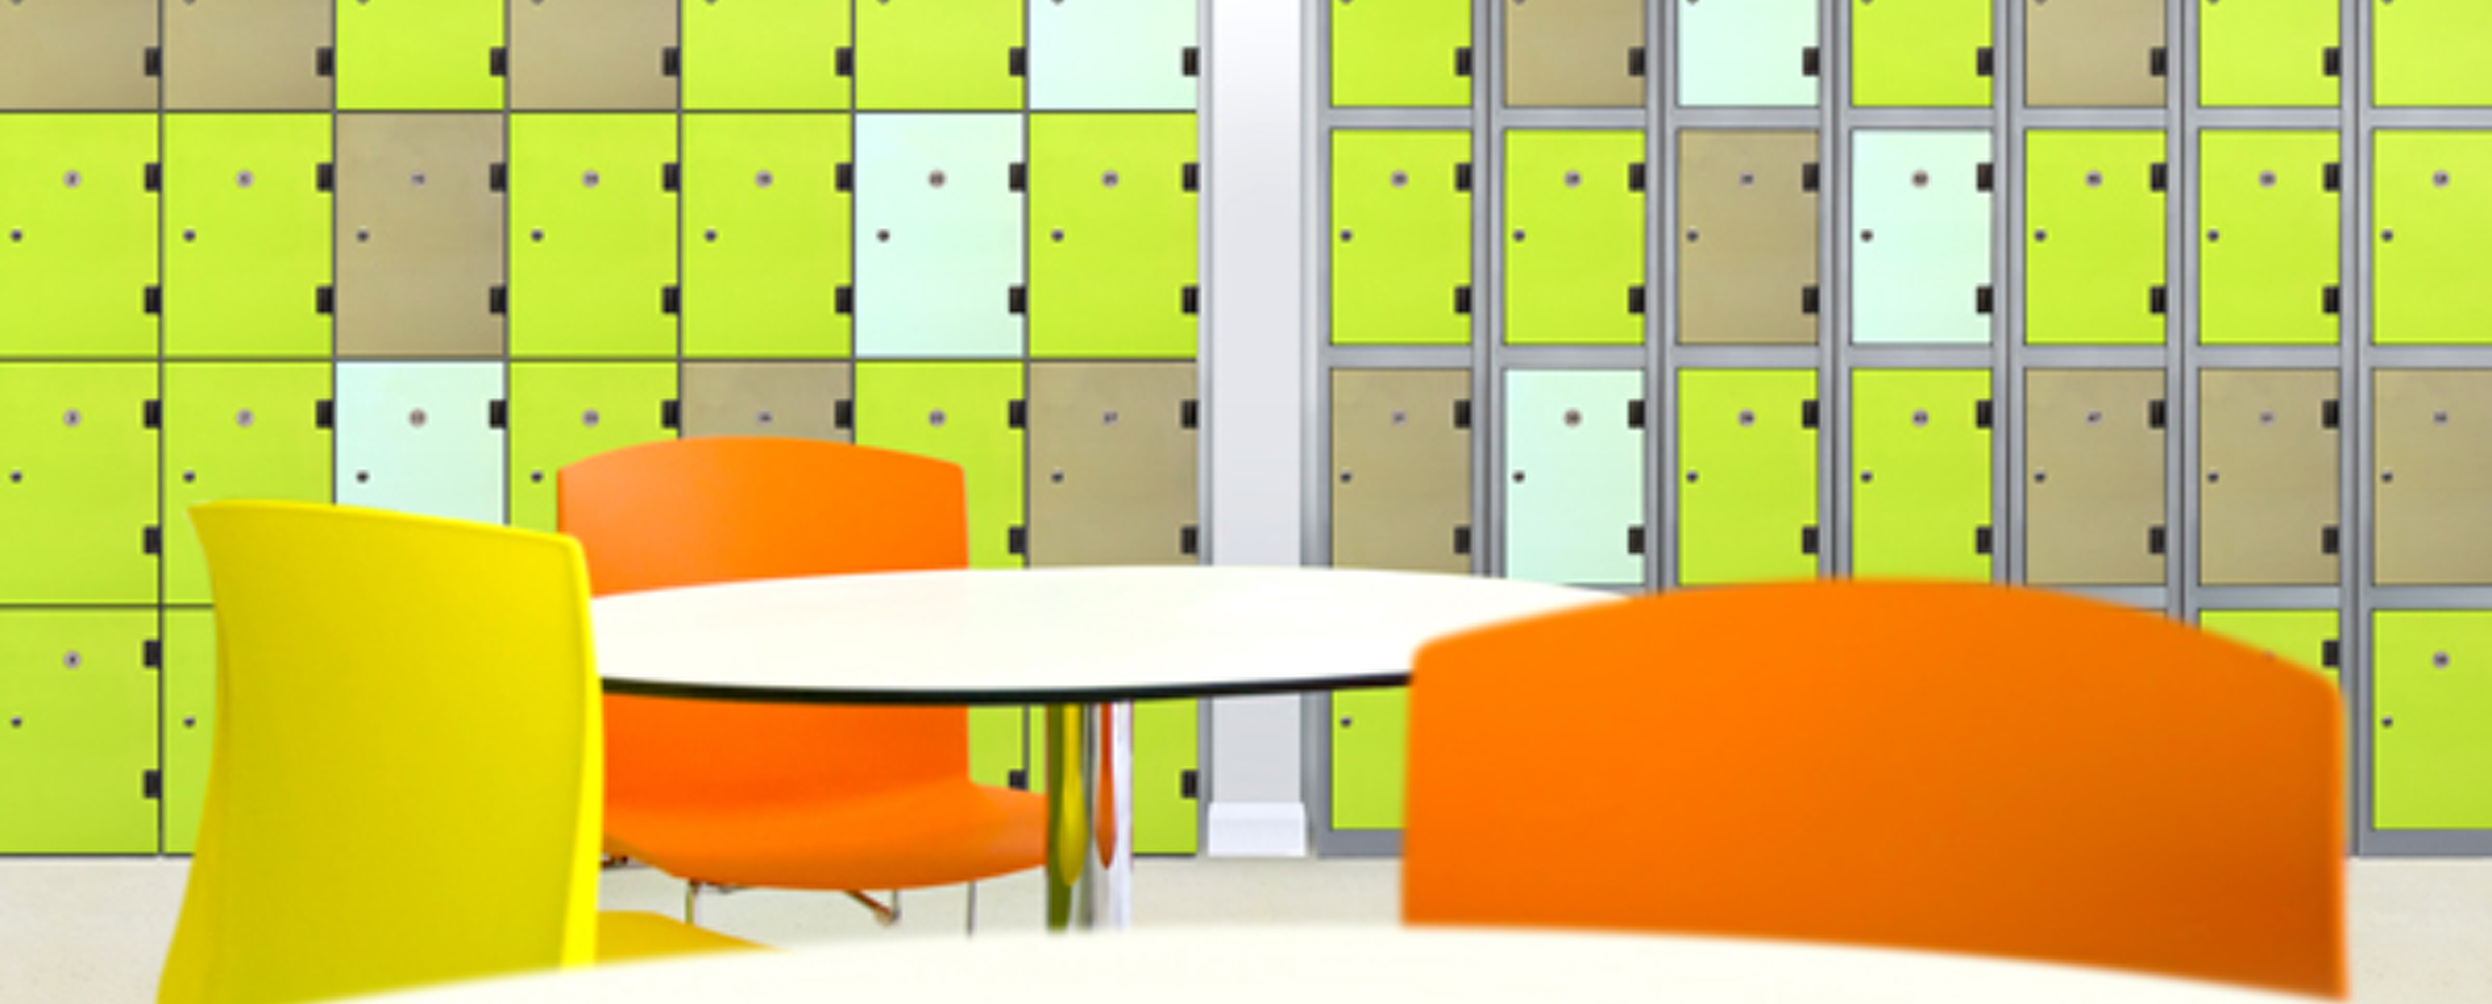 green lockers